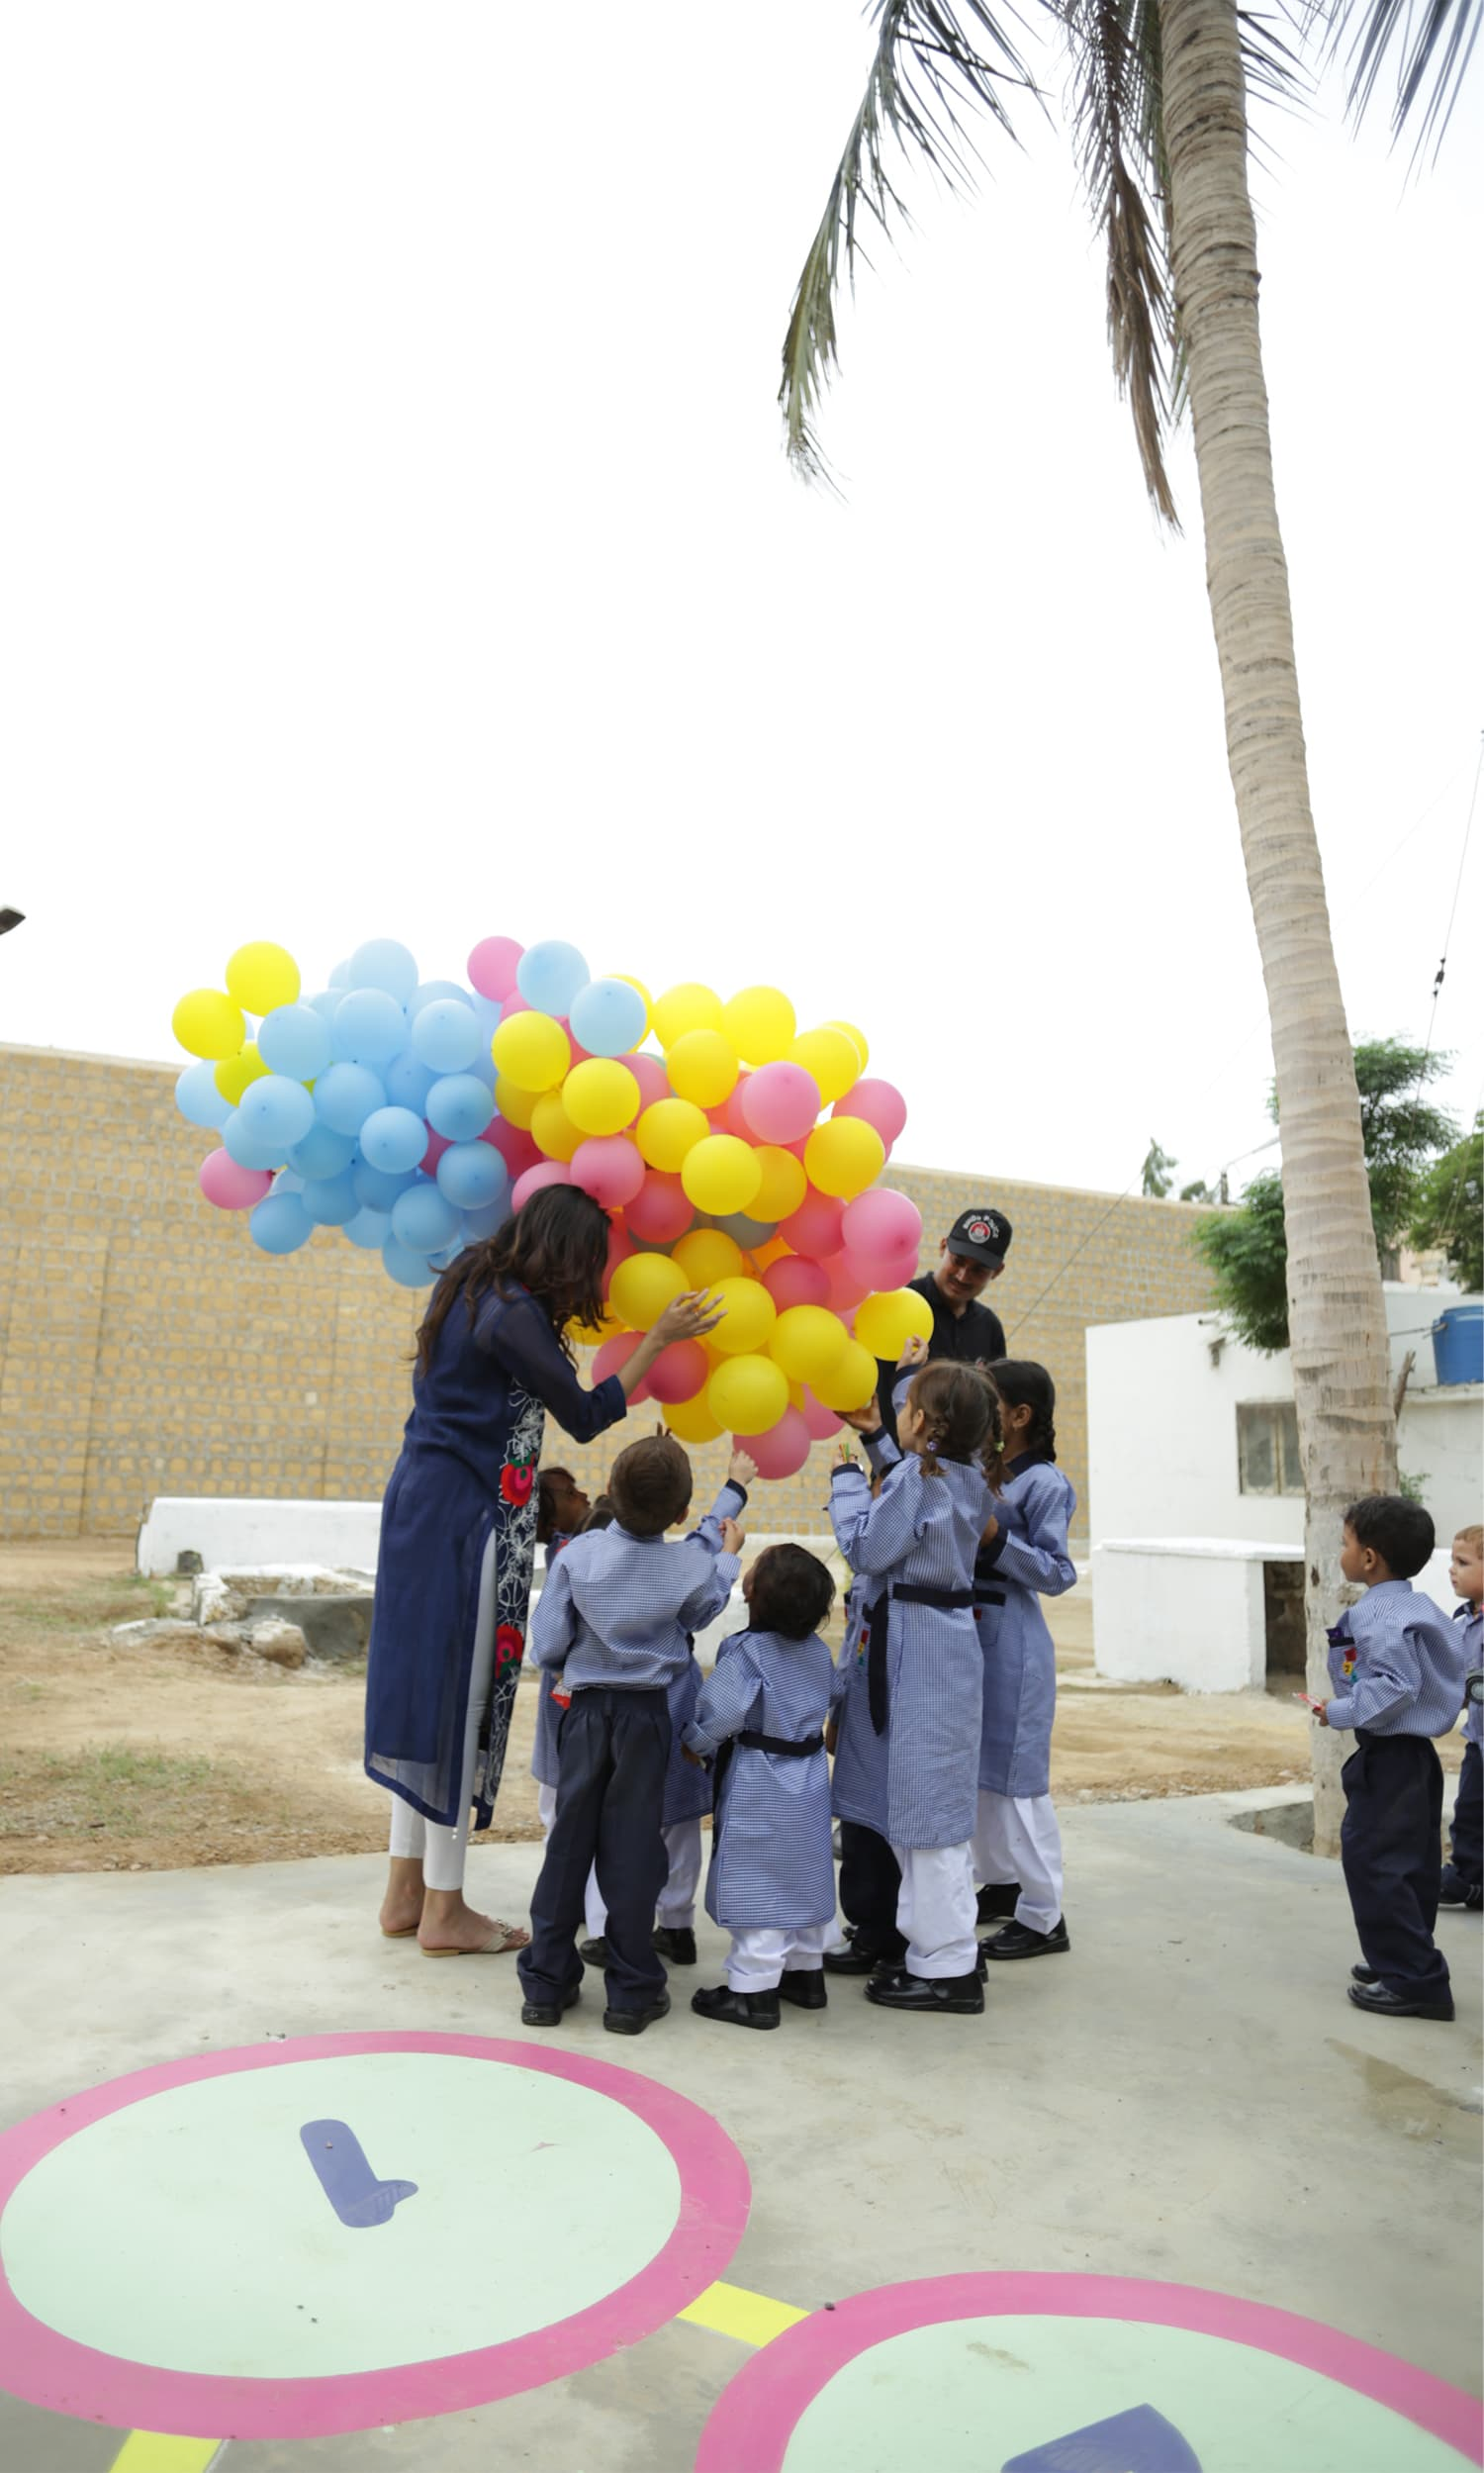 Children surround the balloons during the inauguration ceremony.